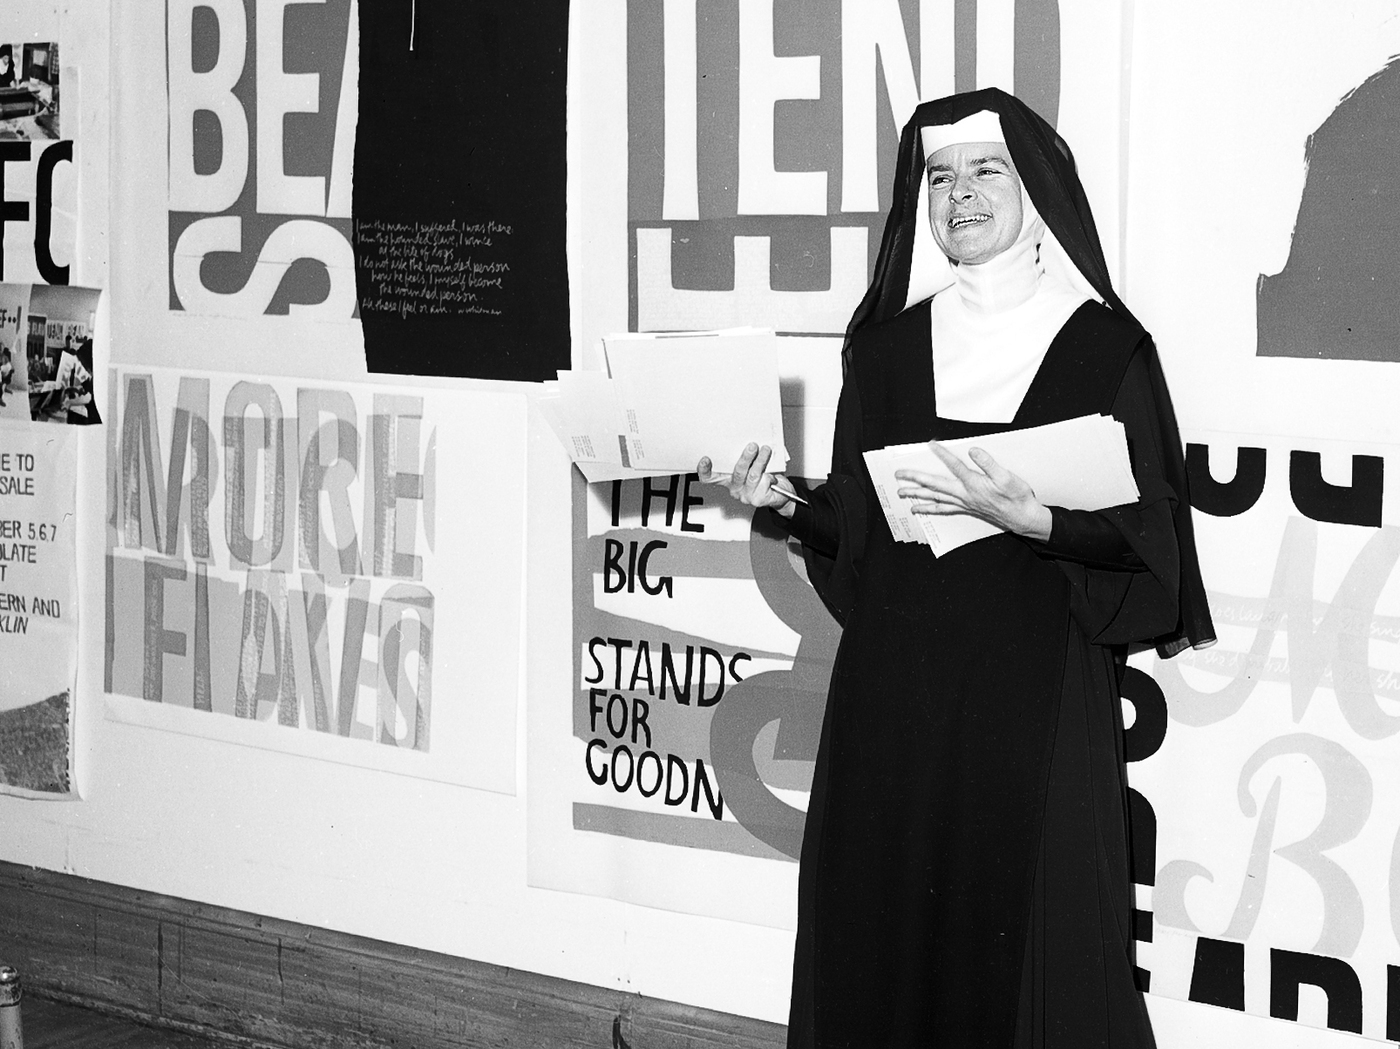 A Nun Inspired By Warhol: The Forgotten Pop Art Of Sister